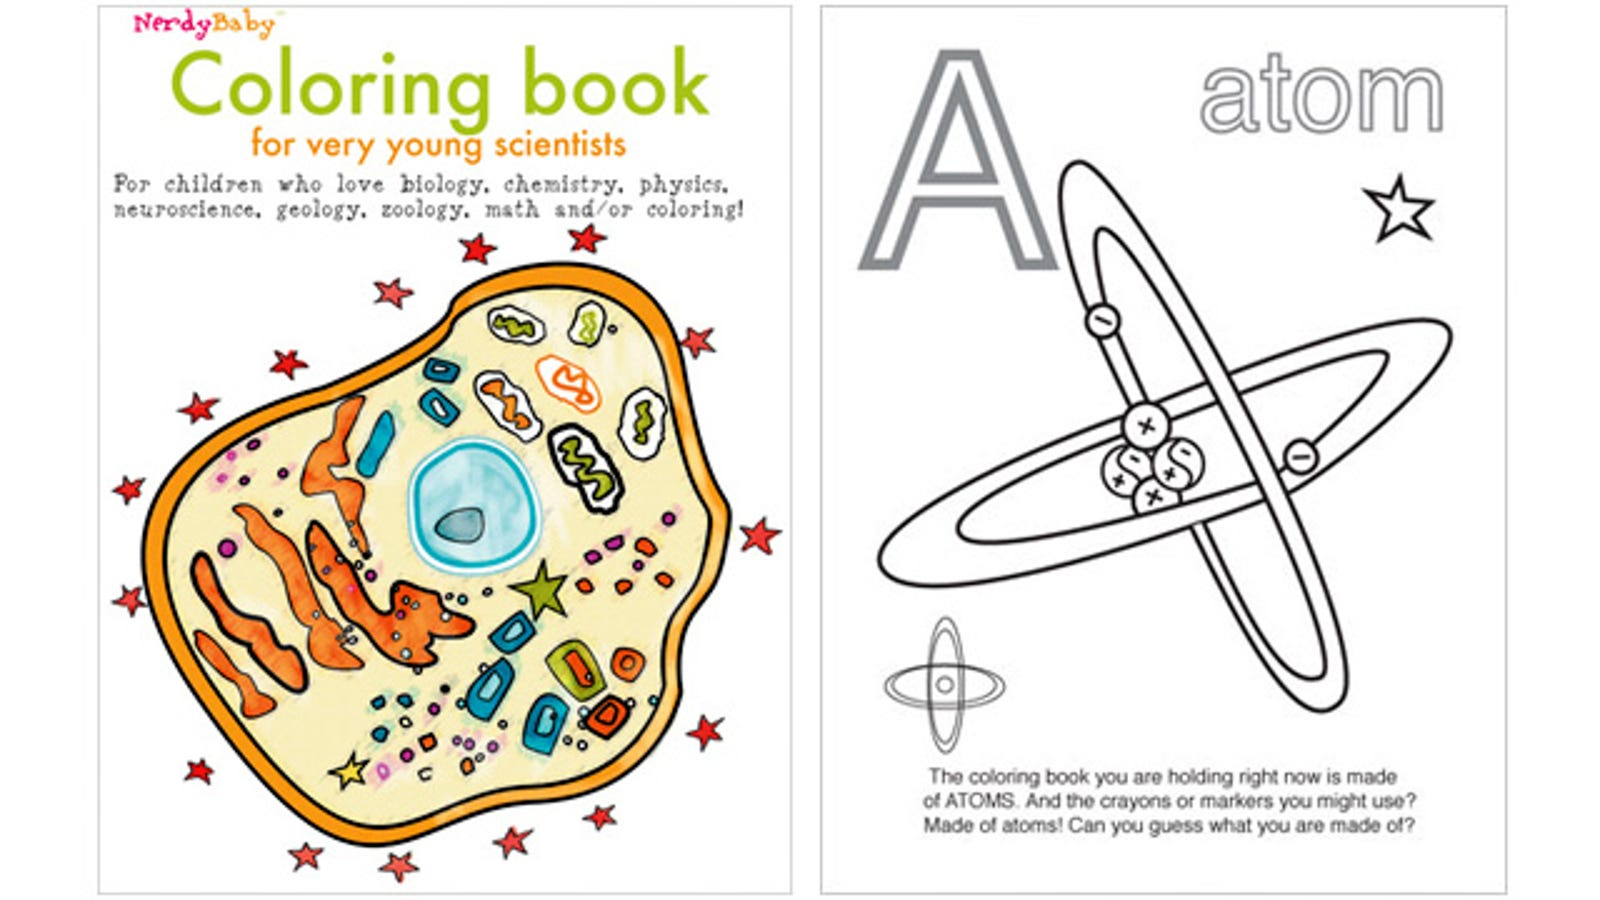 Activity Book For Young Scientists Encourages Coloring Inside the ...